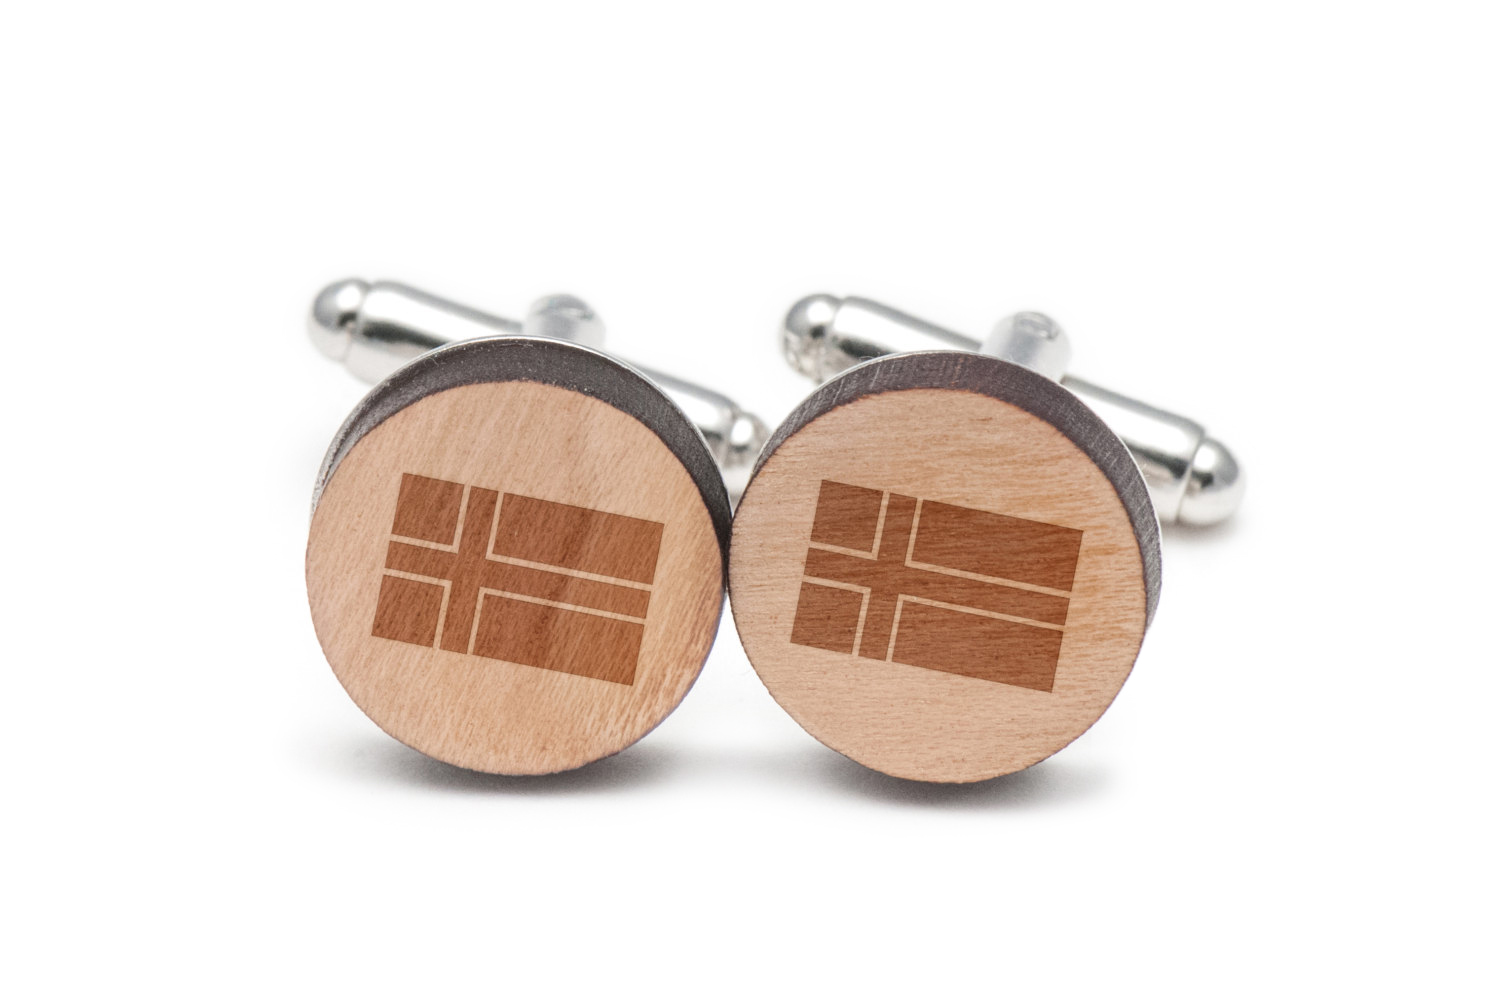 Icelandic Flag Cufflinks, Wood Cufflinks Hand Made in the USA by BigSpool Distributors